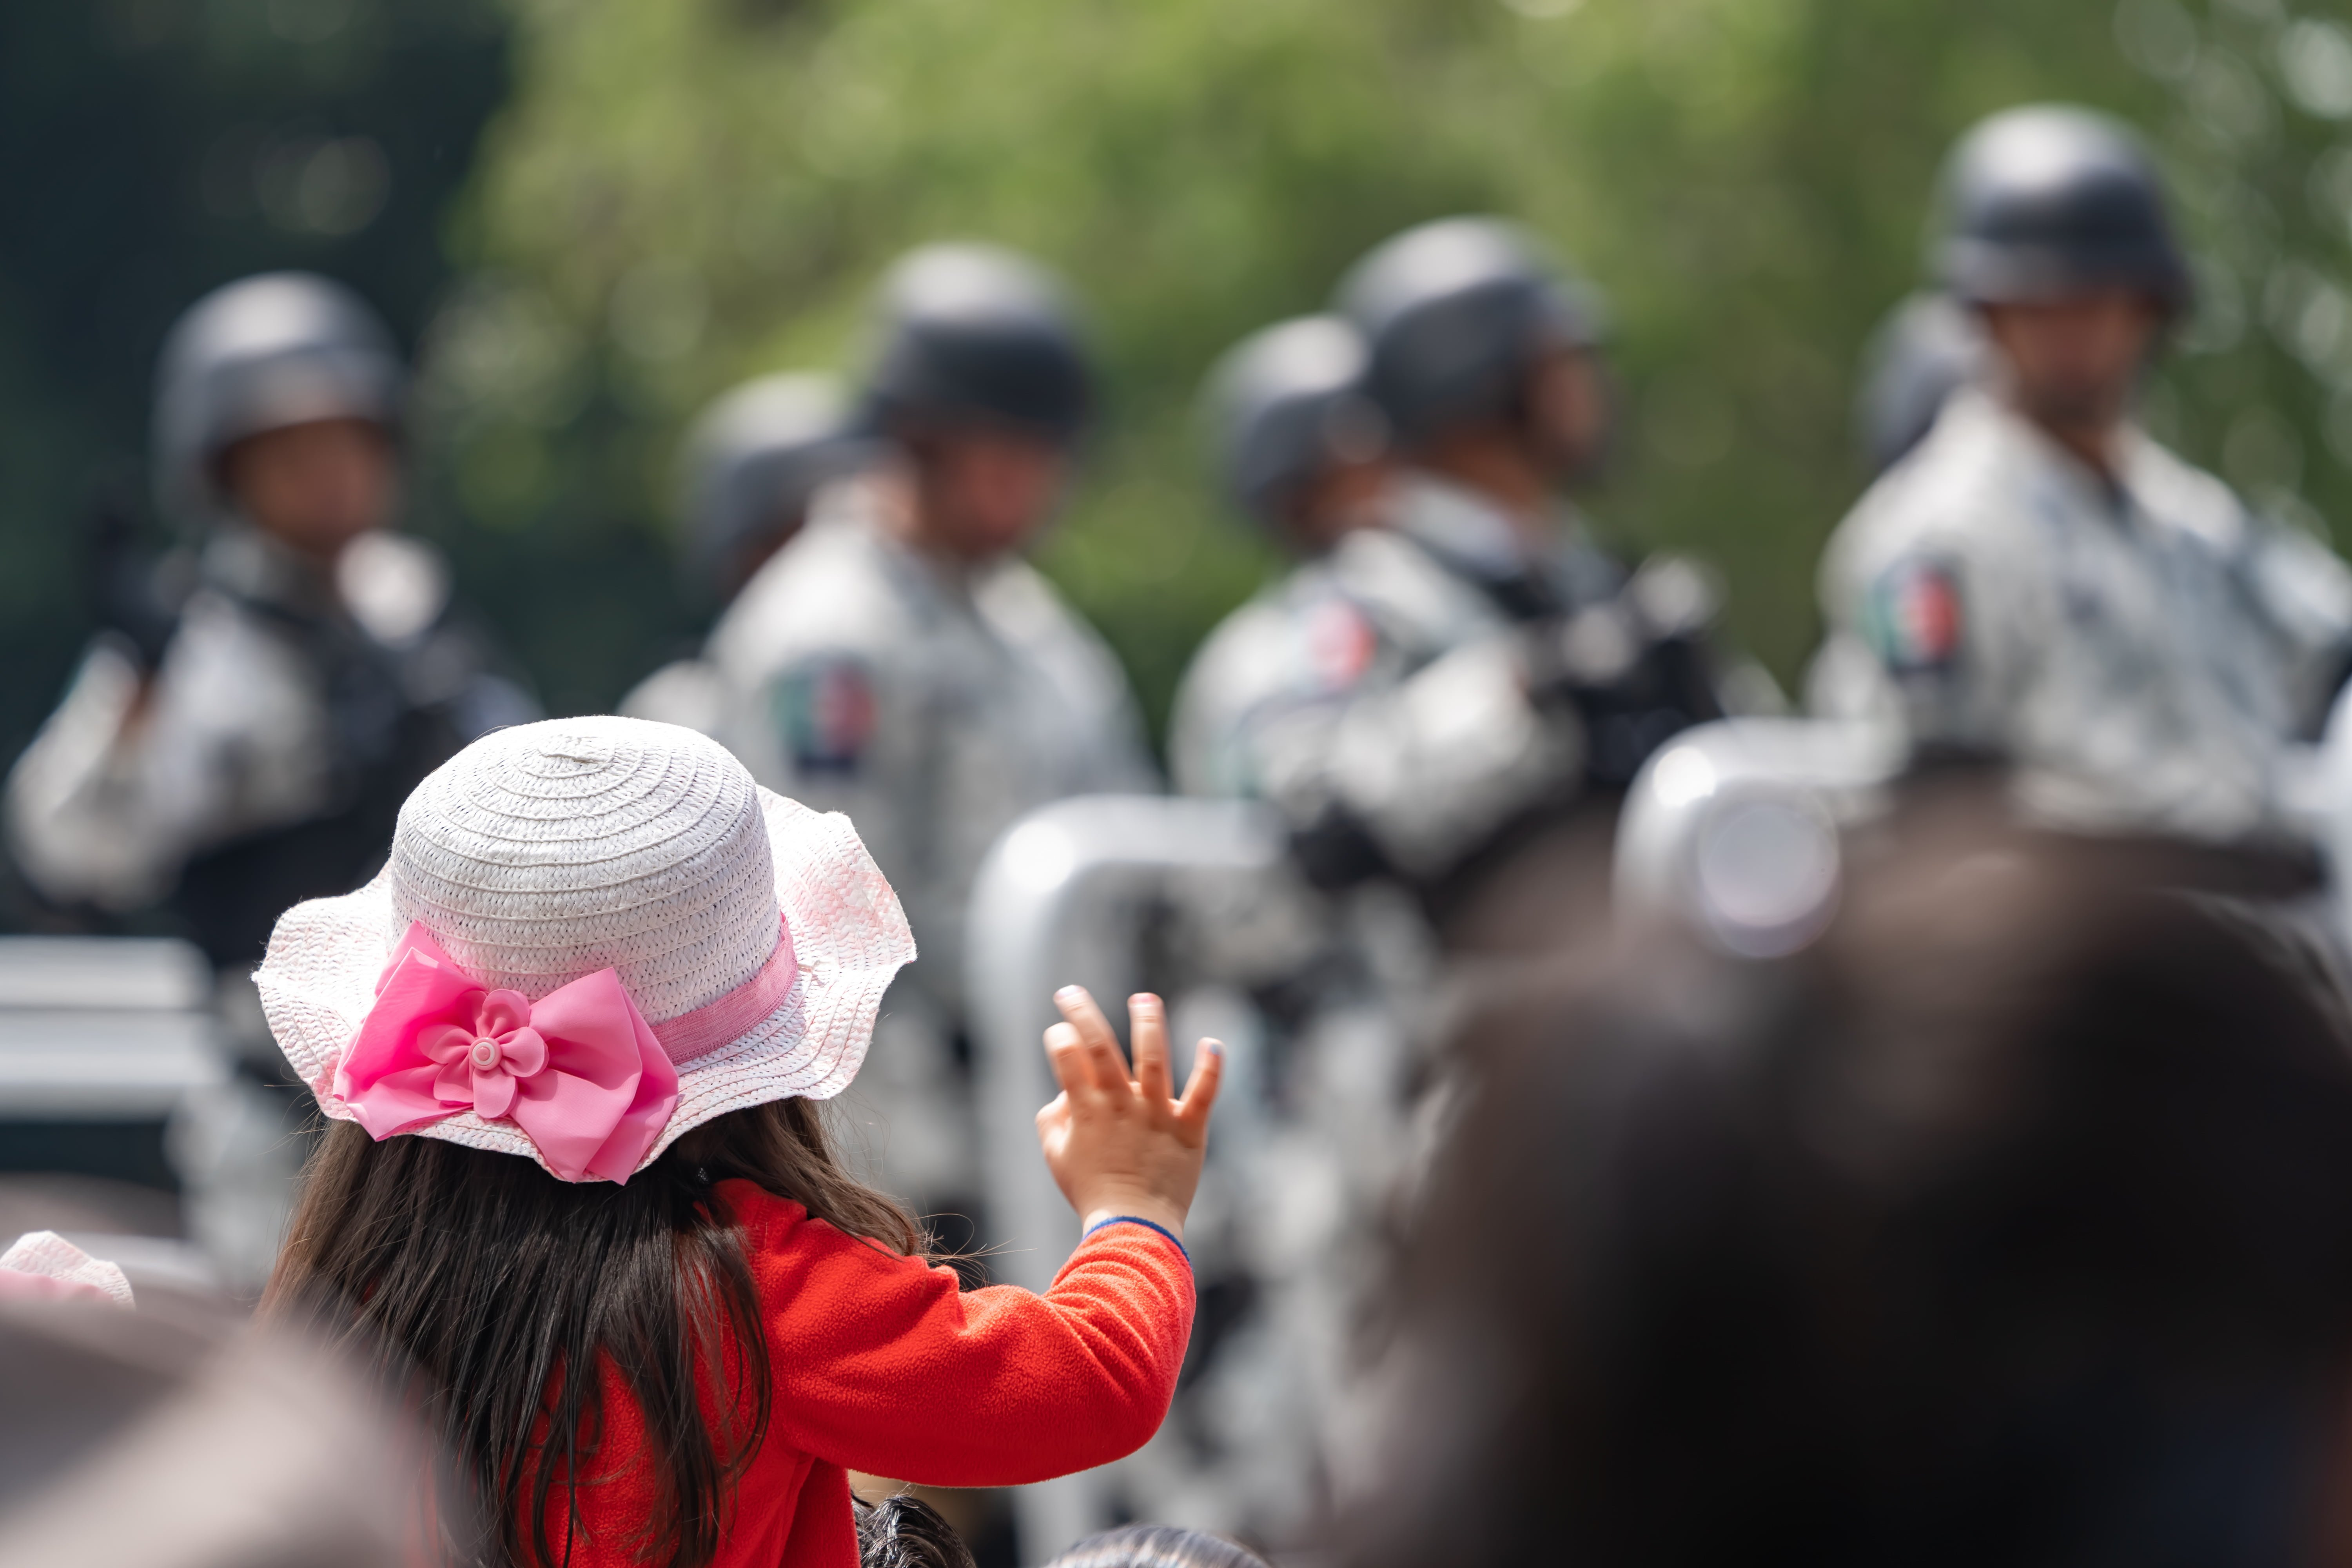 Military day parade in Mexico City, Mexico